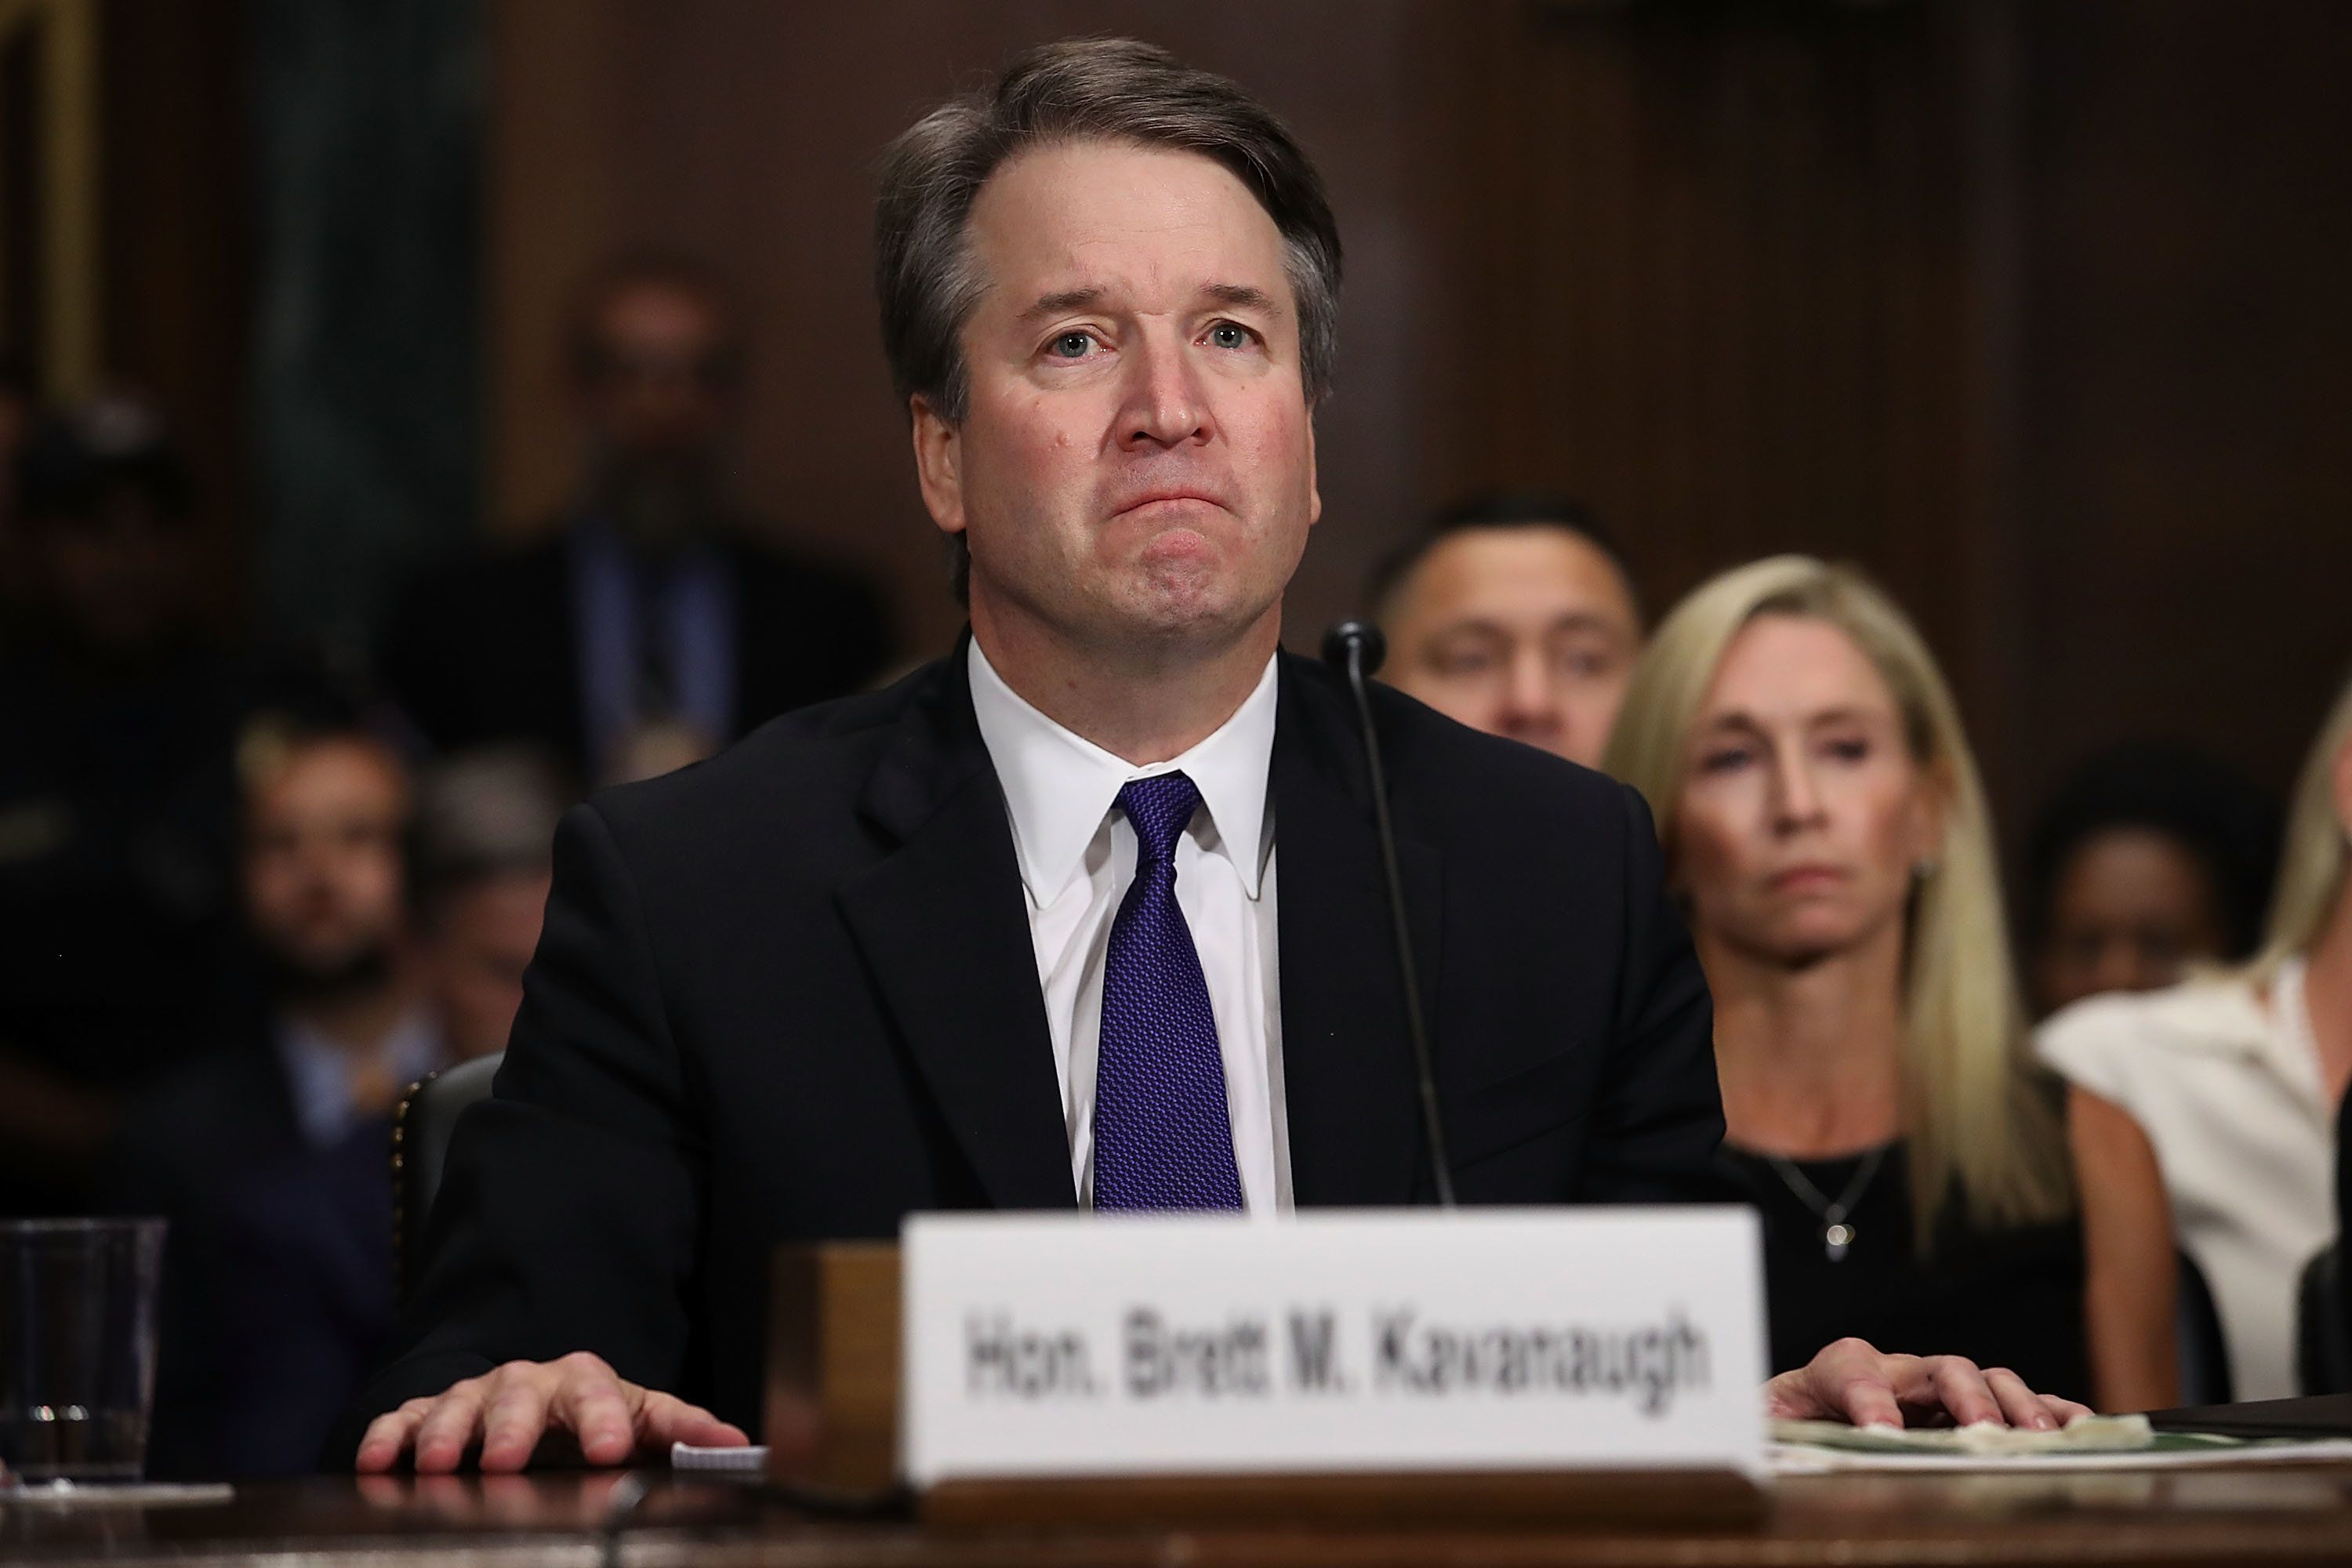 Judge Brett Kavanaugh testifies to the Senate Judiciary Committee during his Supreme Court confirmation hearing Thursday in a